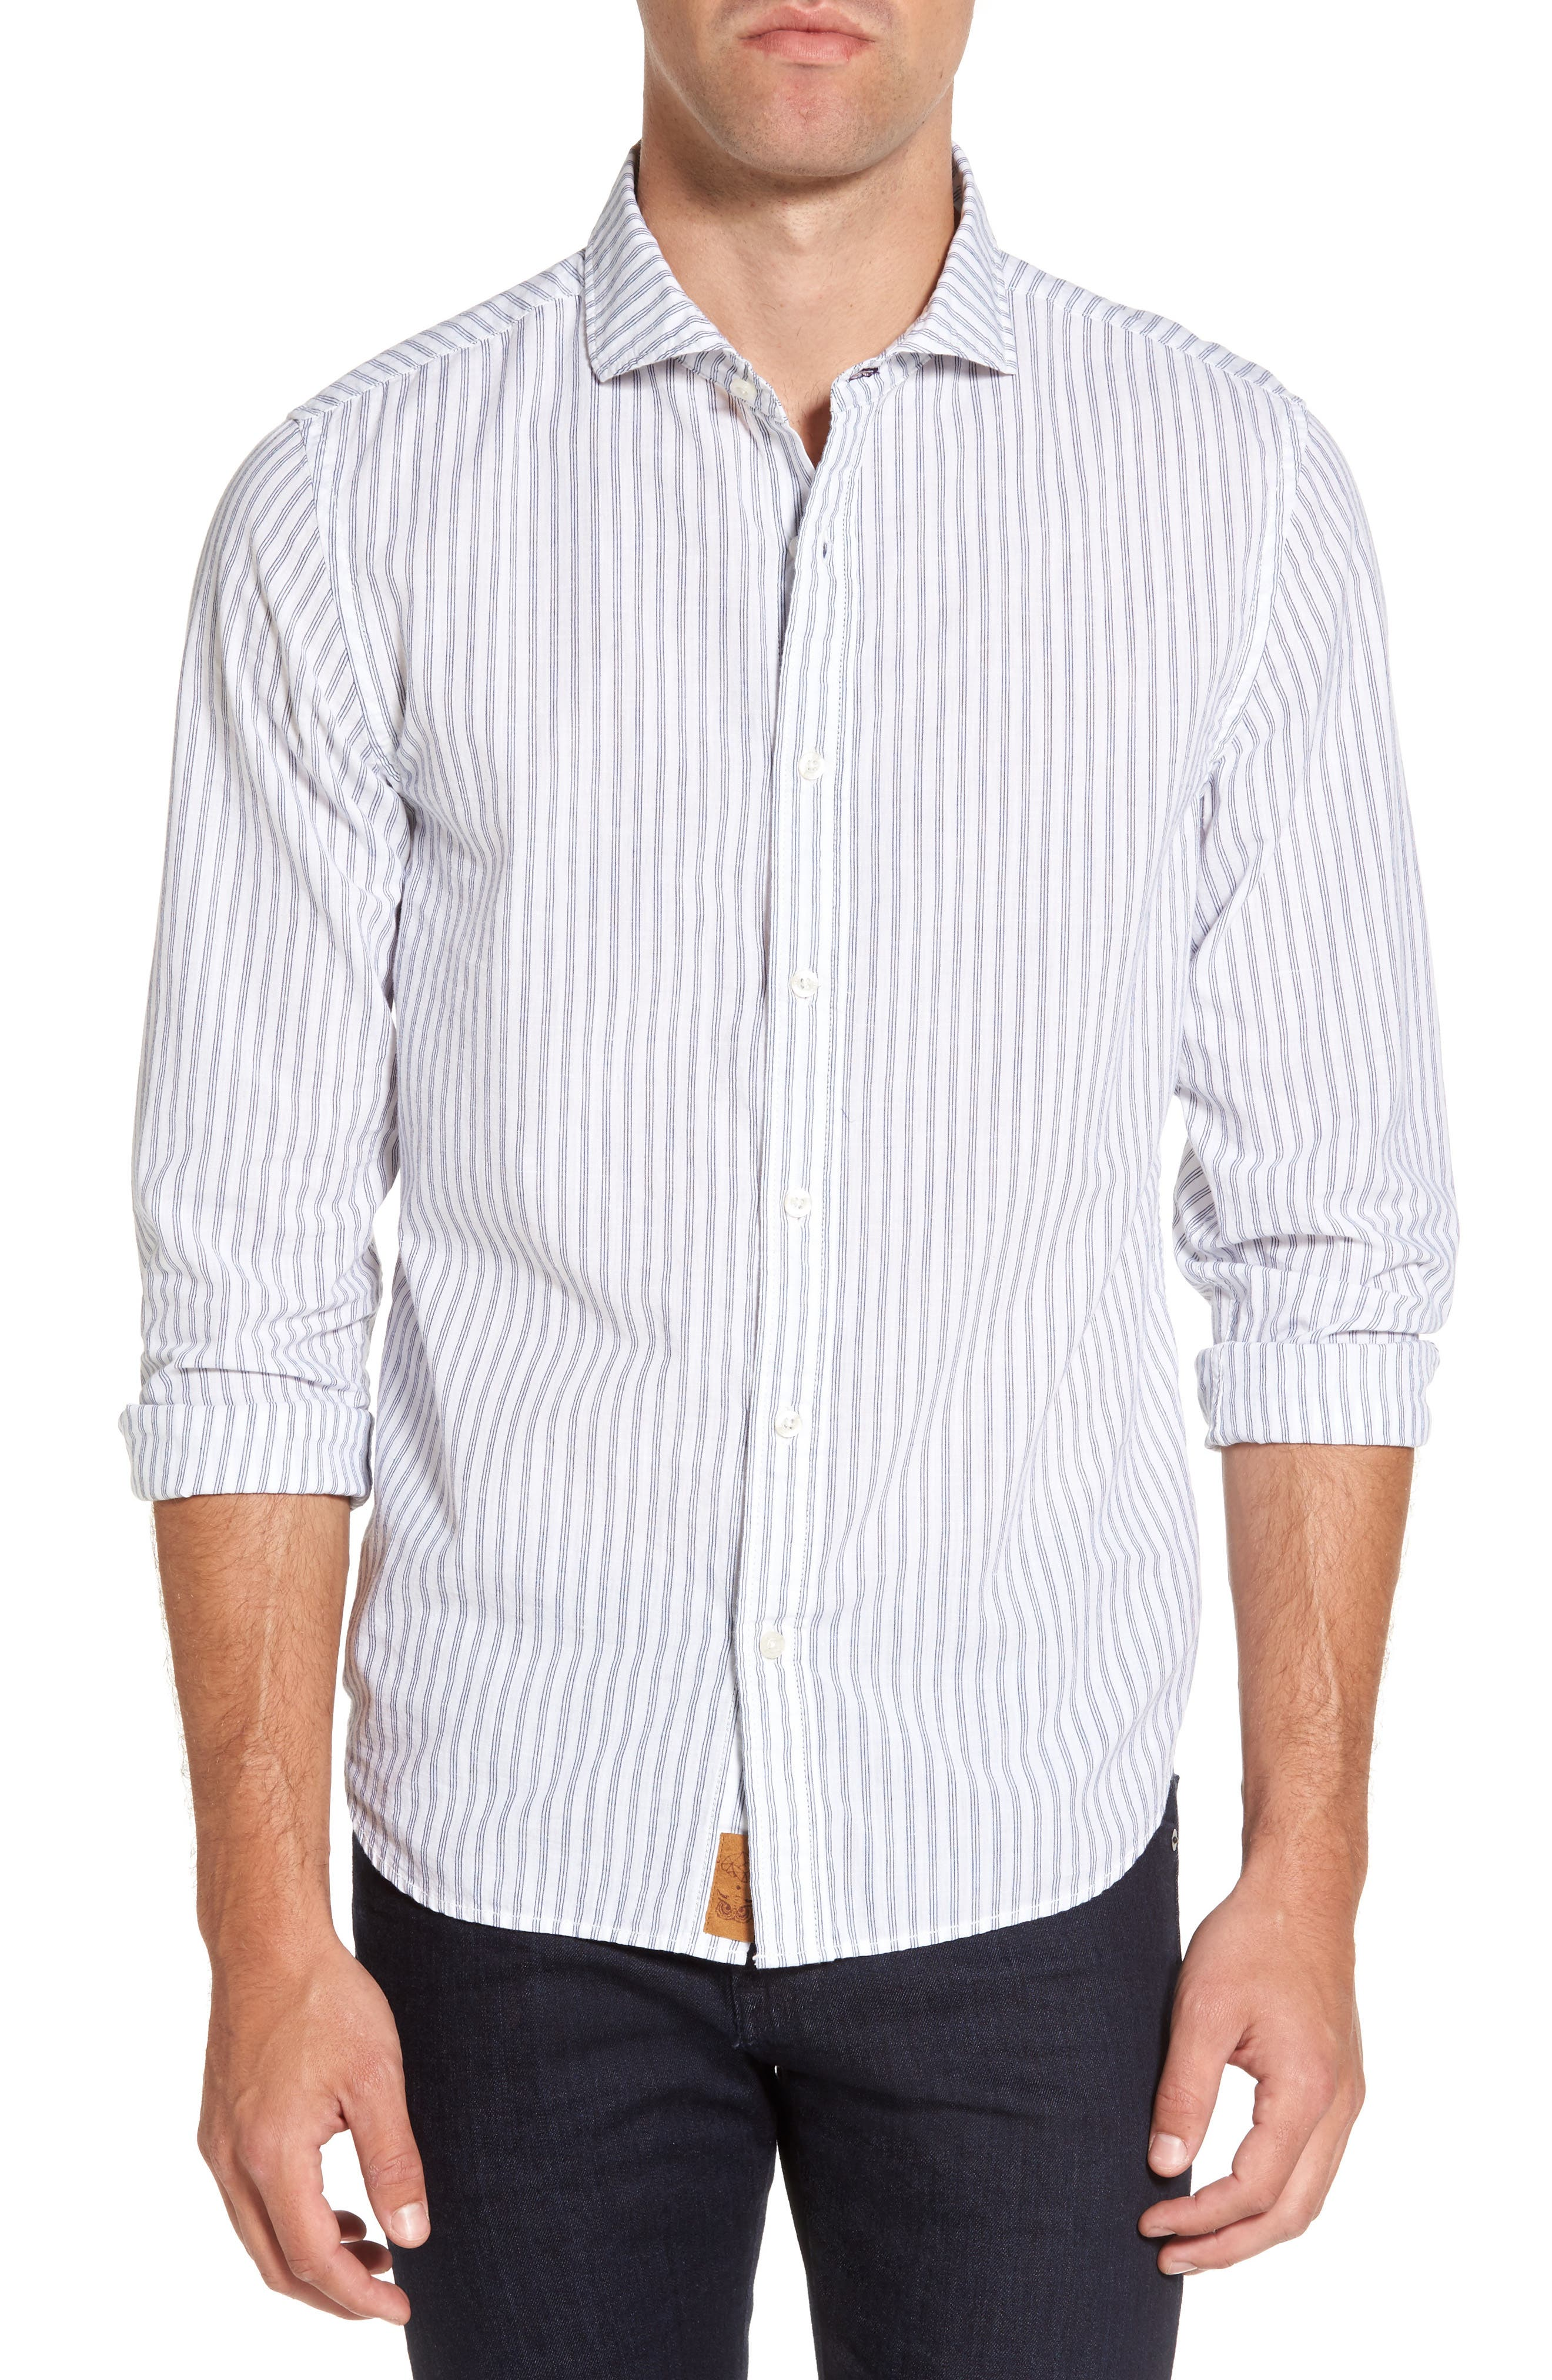 Alternate Image 1 Selected - Nifty Genius Earnest Stripe Sport Shirt